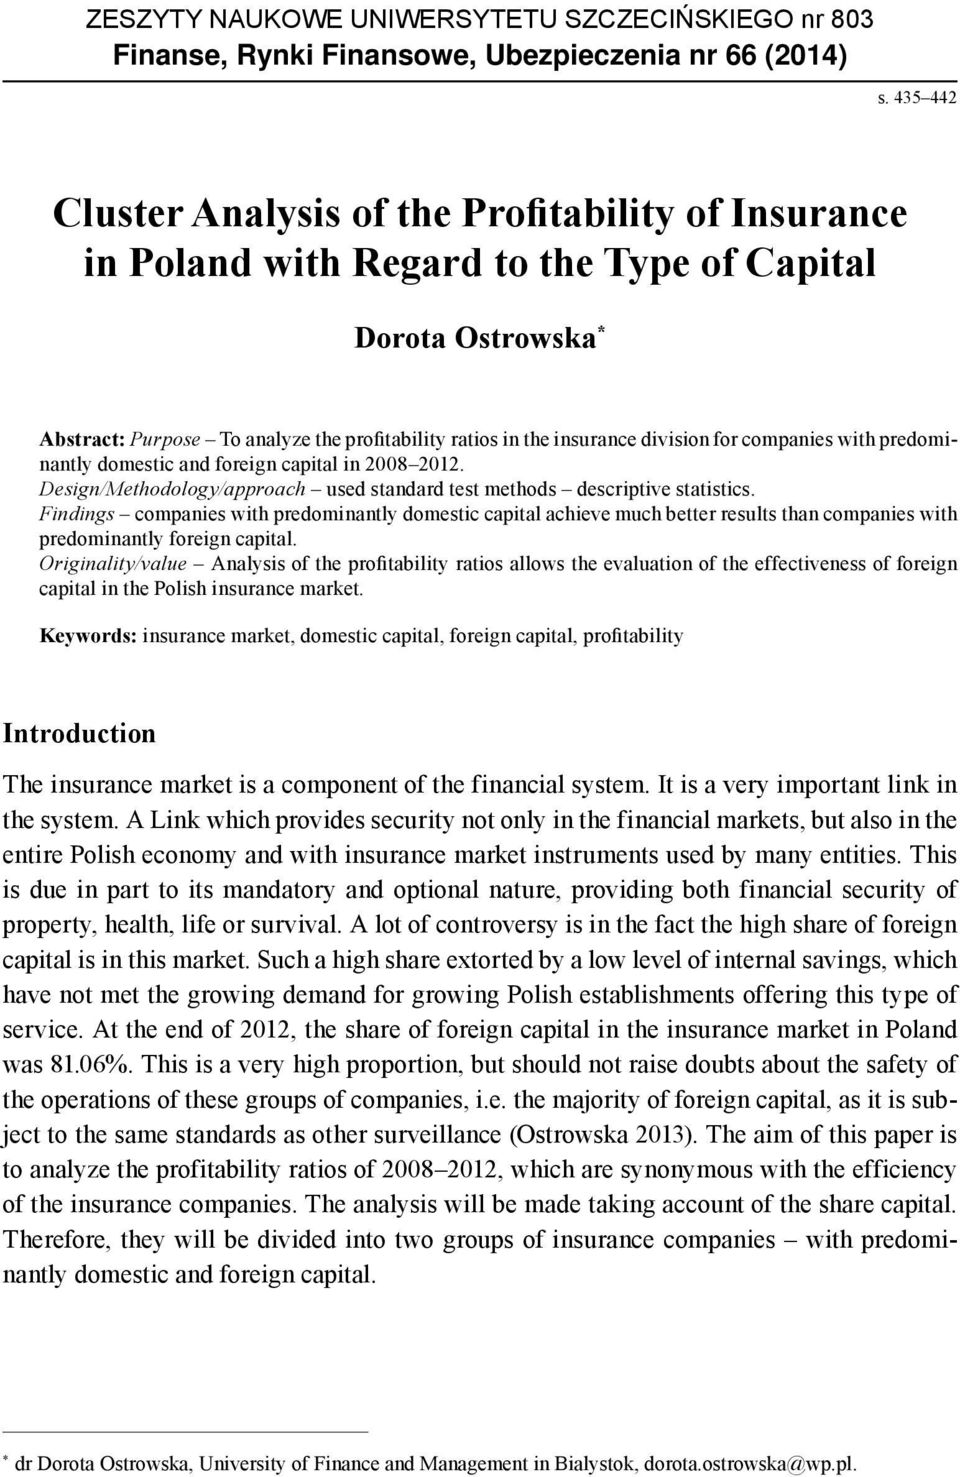 division for companies with predominantly domestic and foreign capital in 2008 2012. Design/Methodology/approach used standard test methods descriptive statistics.